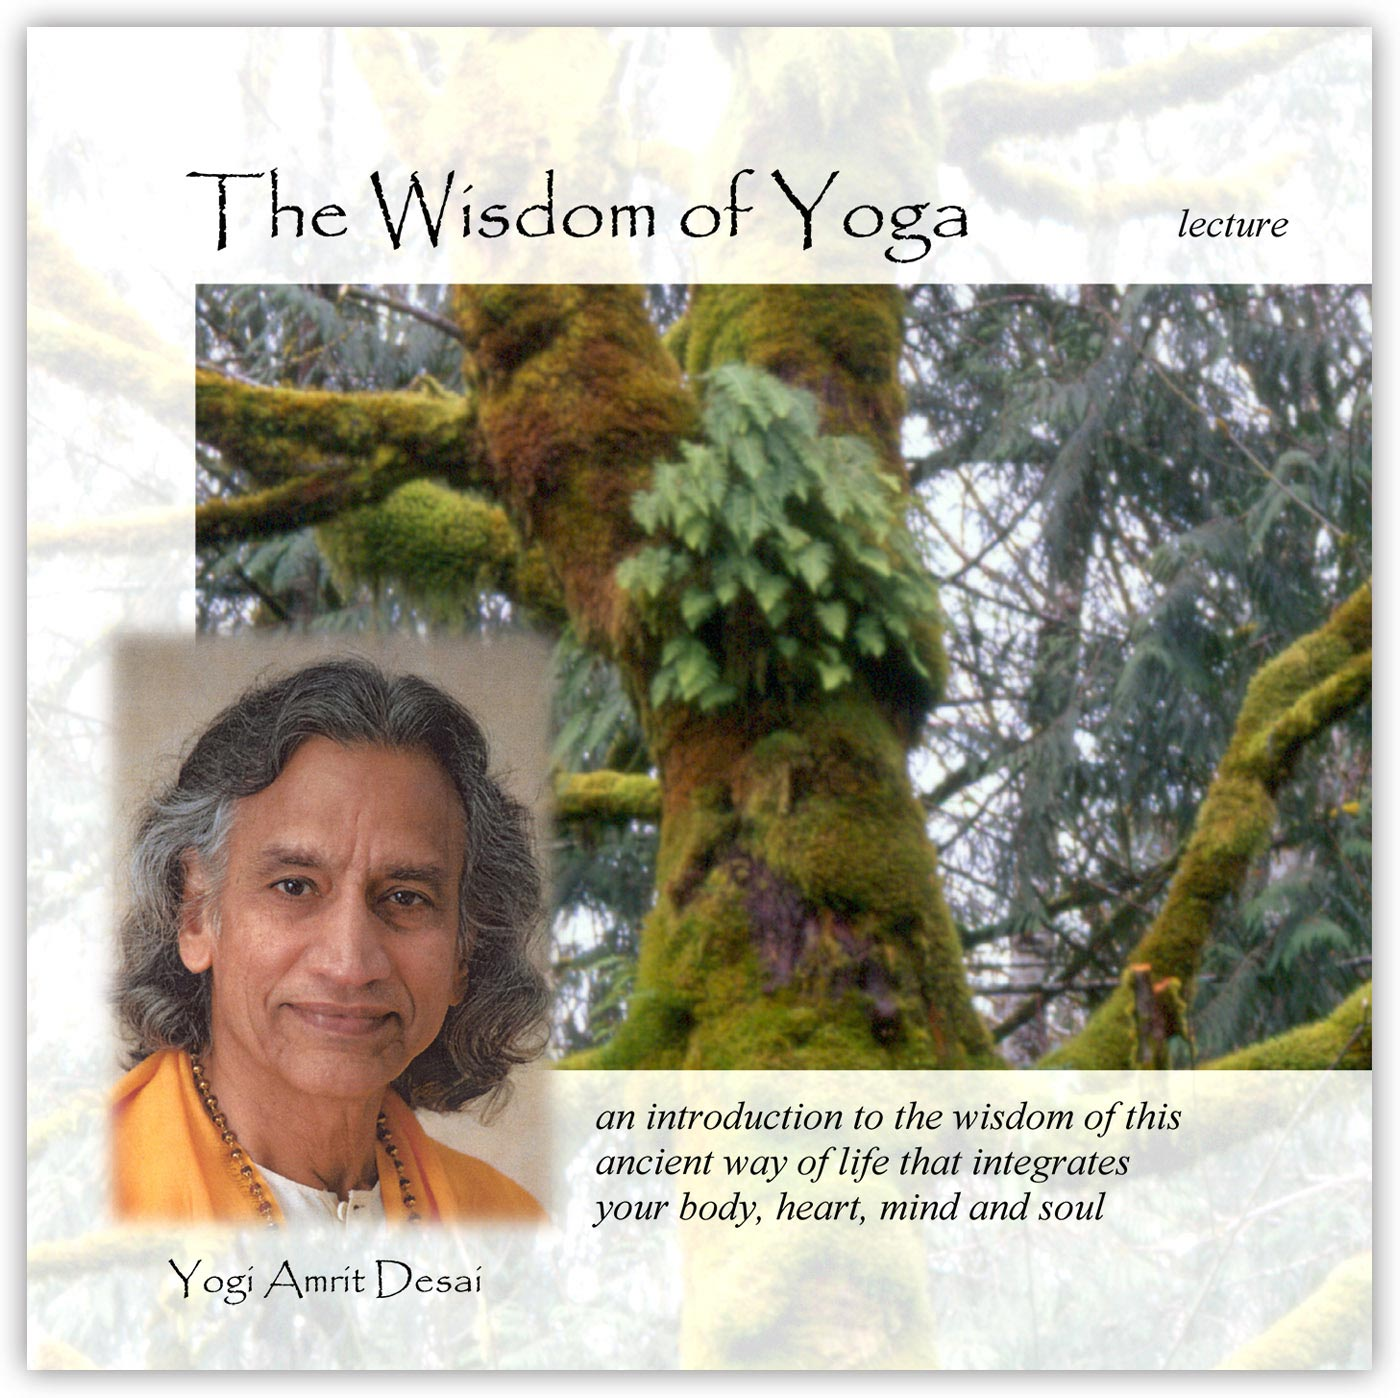 Lecture – The Wisdom of Yoga with Yogi Amrit Desai